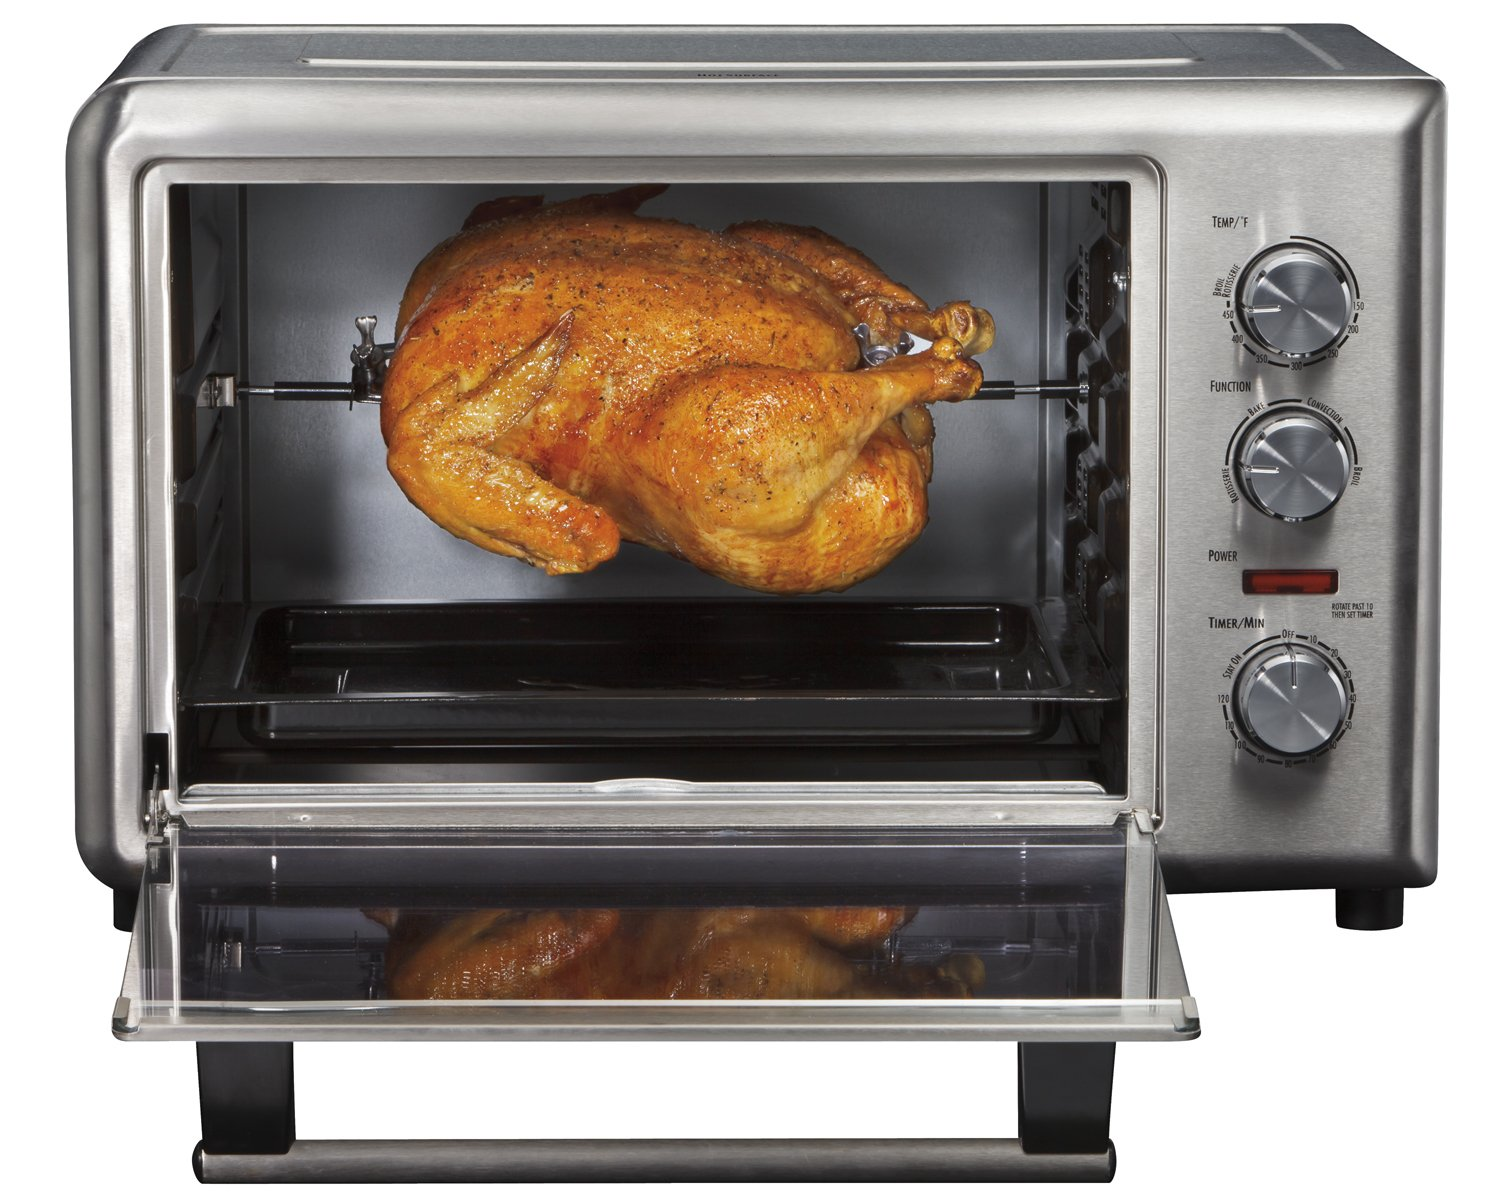 Countertop Microwave Oven With Convection And Grill : Hamilton Beach Countertop Oven with Convection and Rotisserie